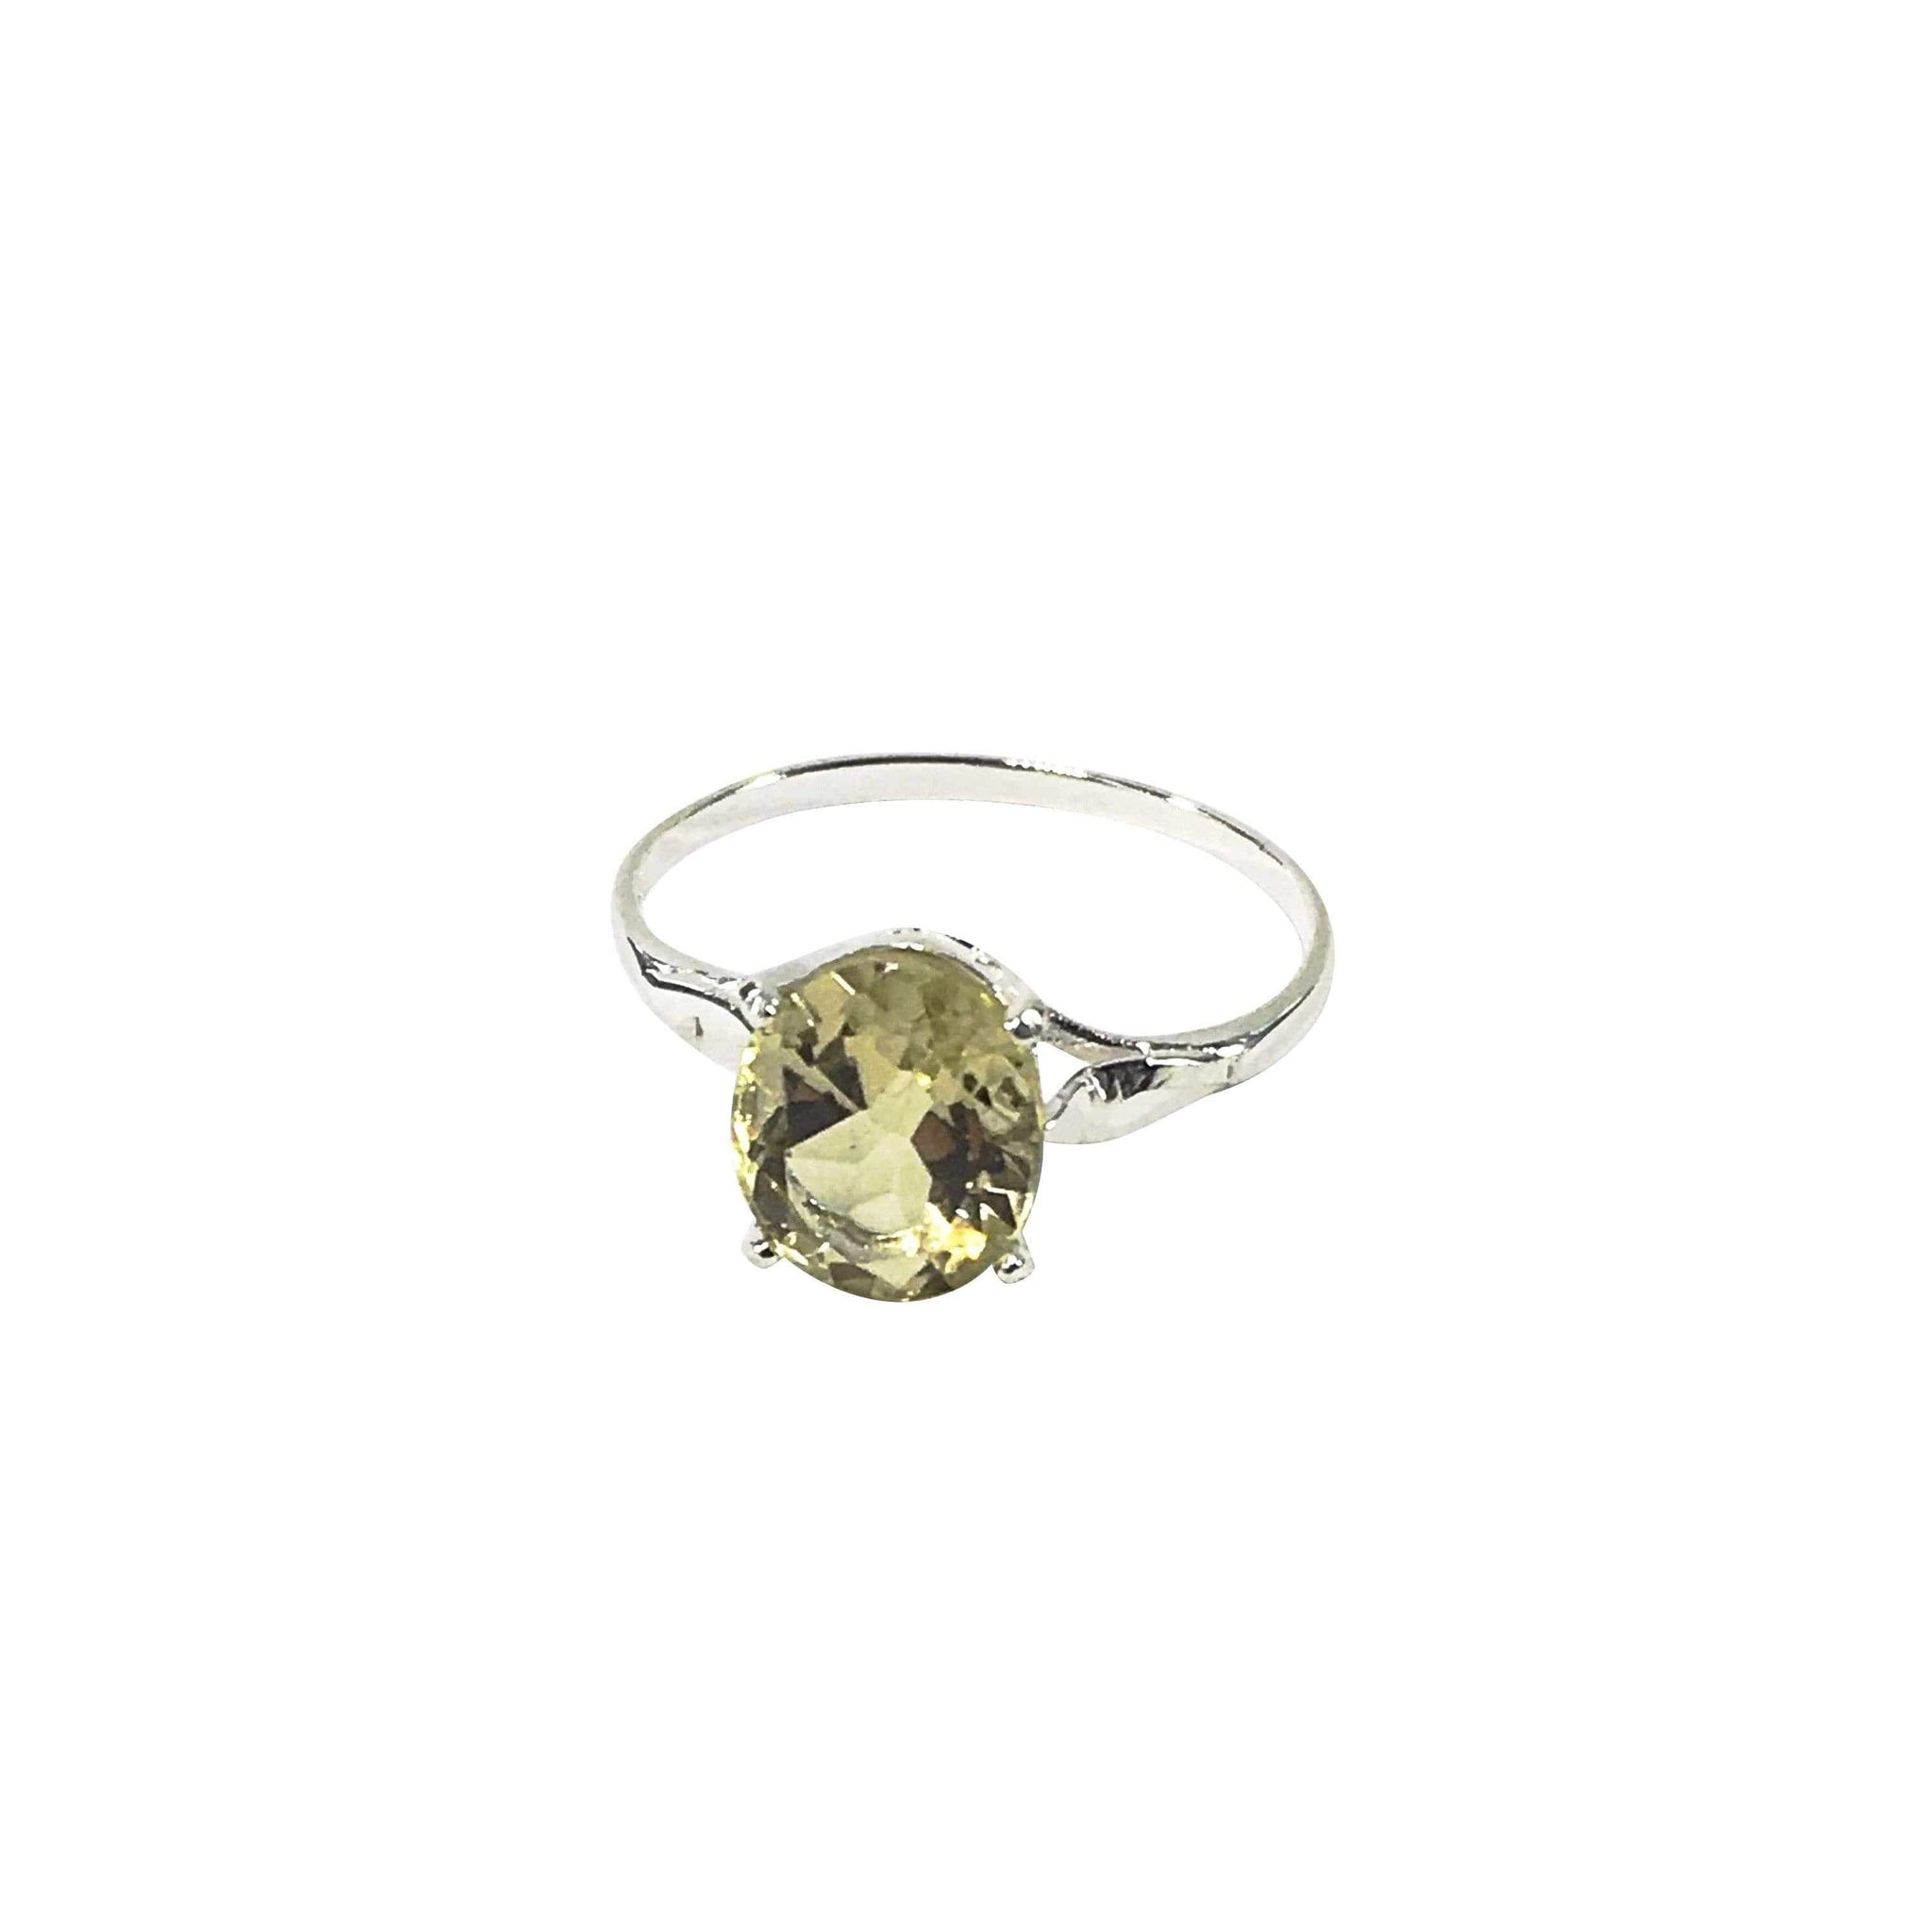 Handmade Sterling Silver Lemon Quartz Gemstone Ring